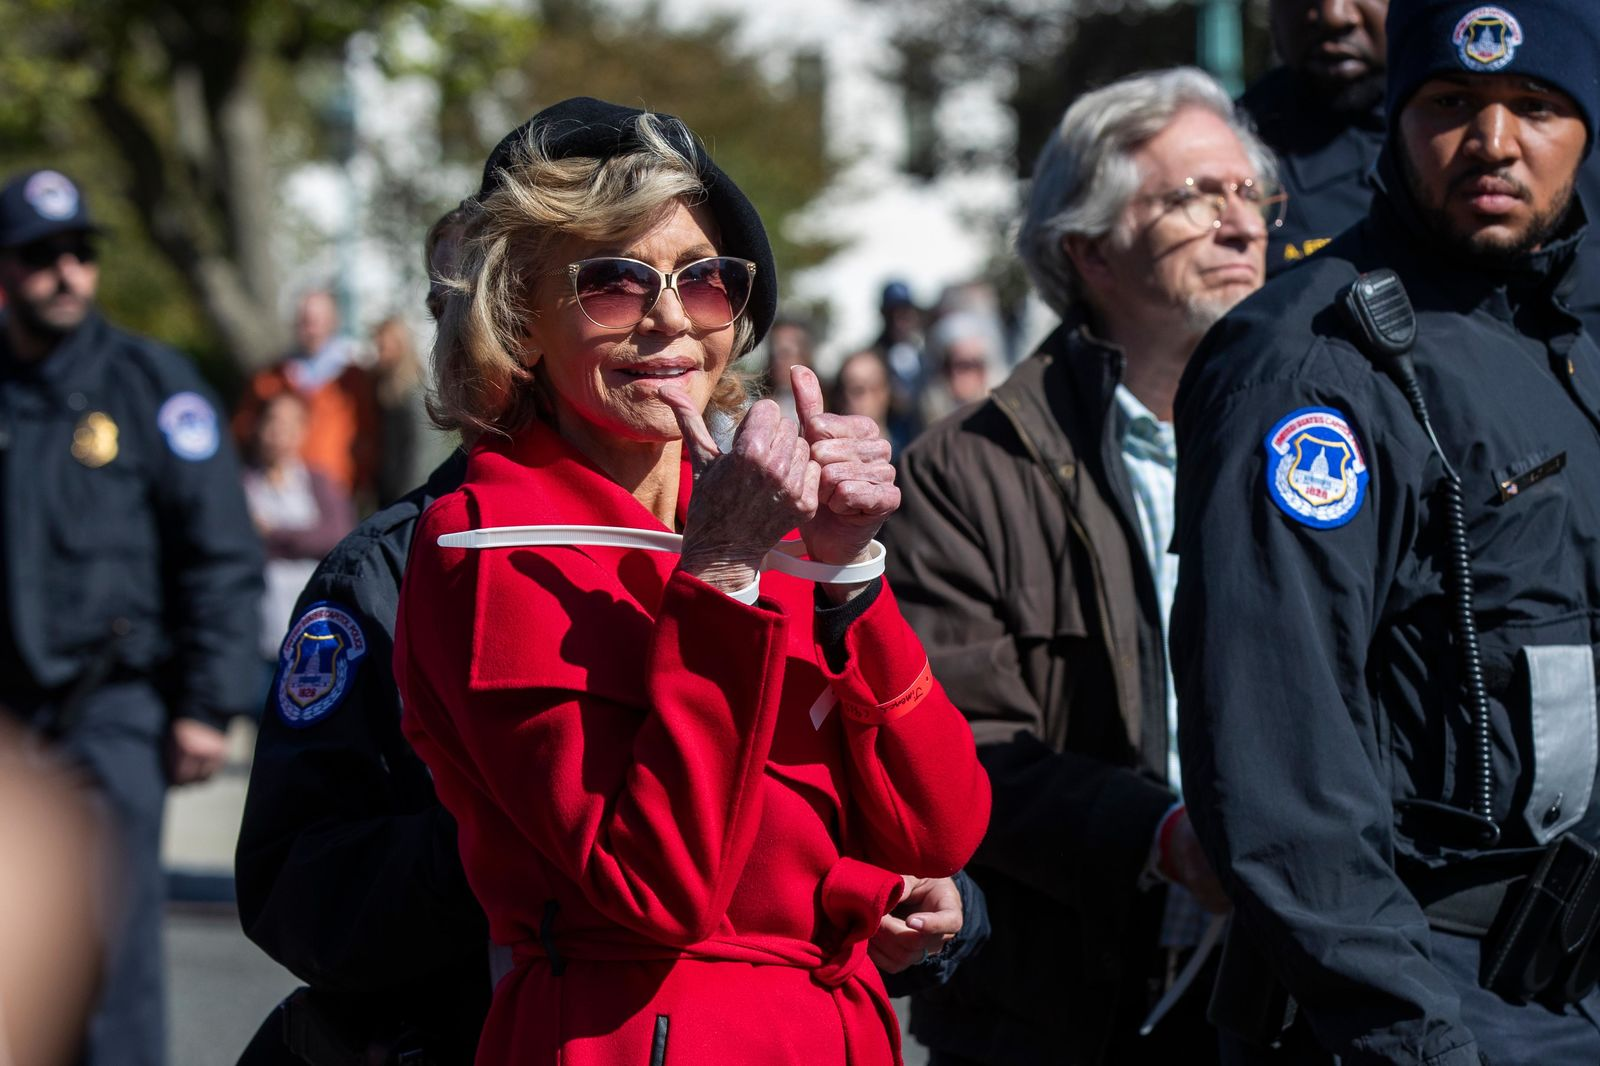 Actress Jane Fonda gestures after being arrested during a rally on Capitol Hill in Washington, Friday, Oct. 18, 2019. A half-century after throwing her attention-getting celebrity status into Vietnam War protests, Fonda is now doing the same in a U.S. climate movement where the average age is 18. (AP Photo/Manuel Balce Ceneta)